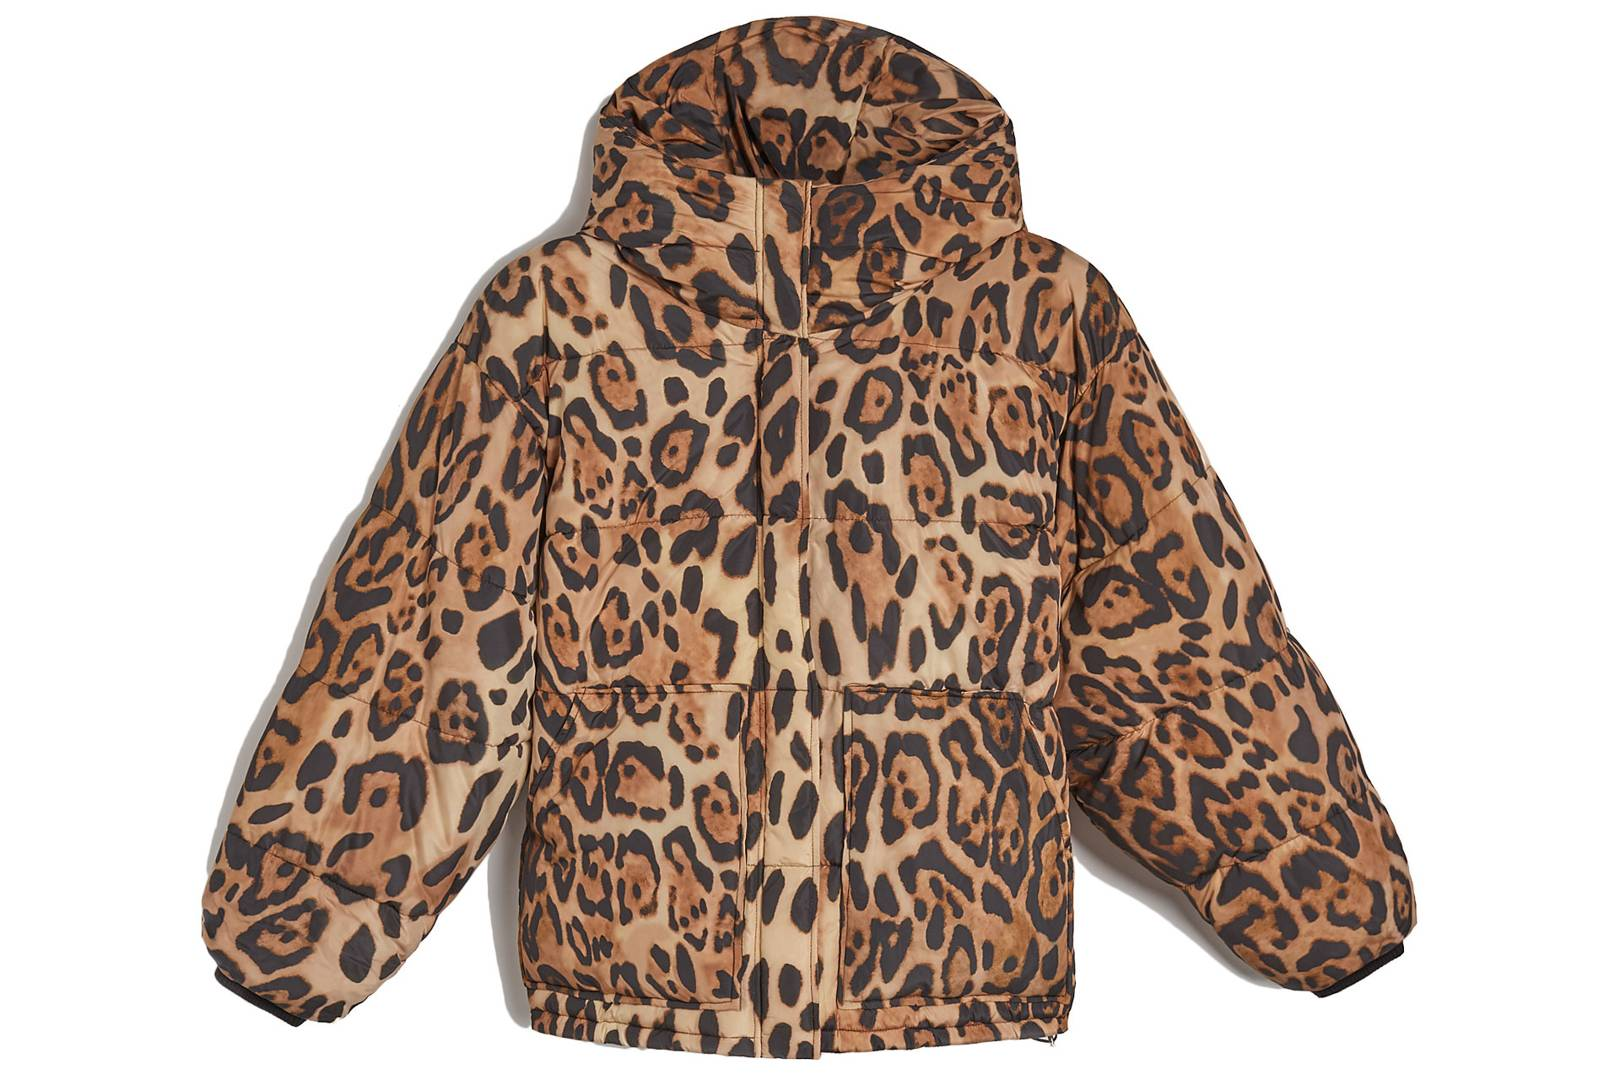 f7519c24fee1 The Best Animal Print Pieces To Buy Now | British Vogue